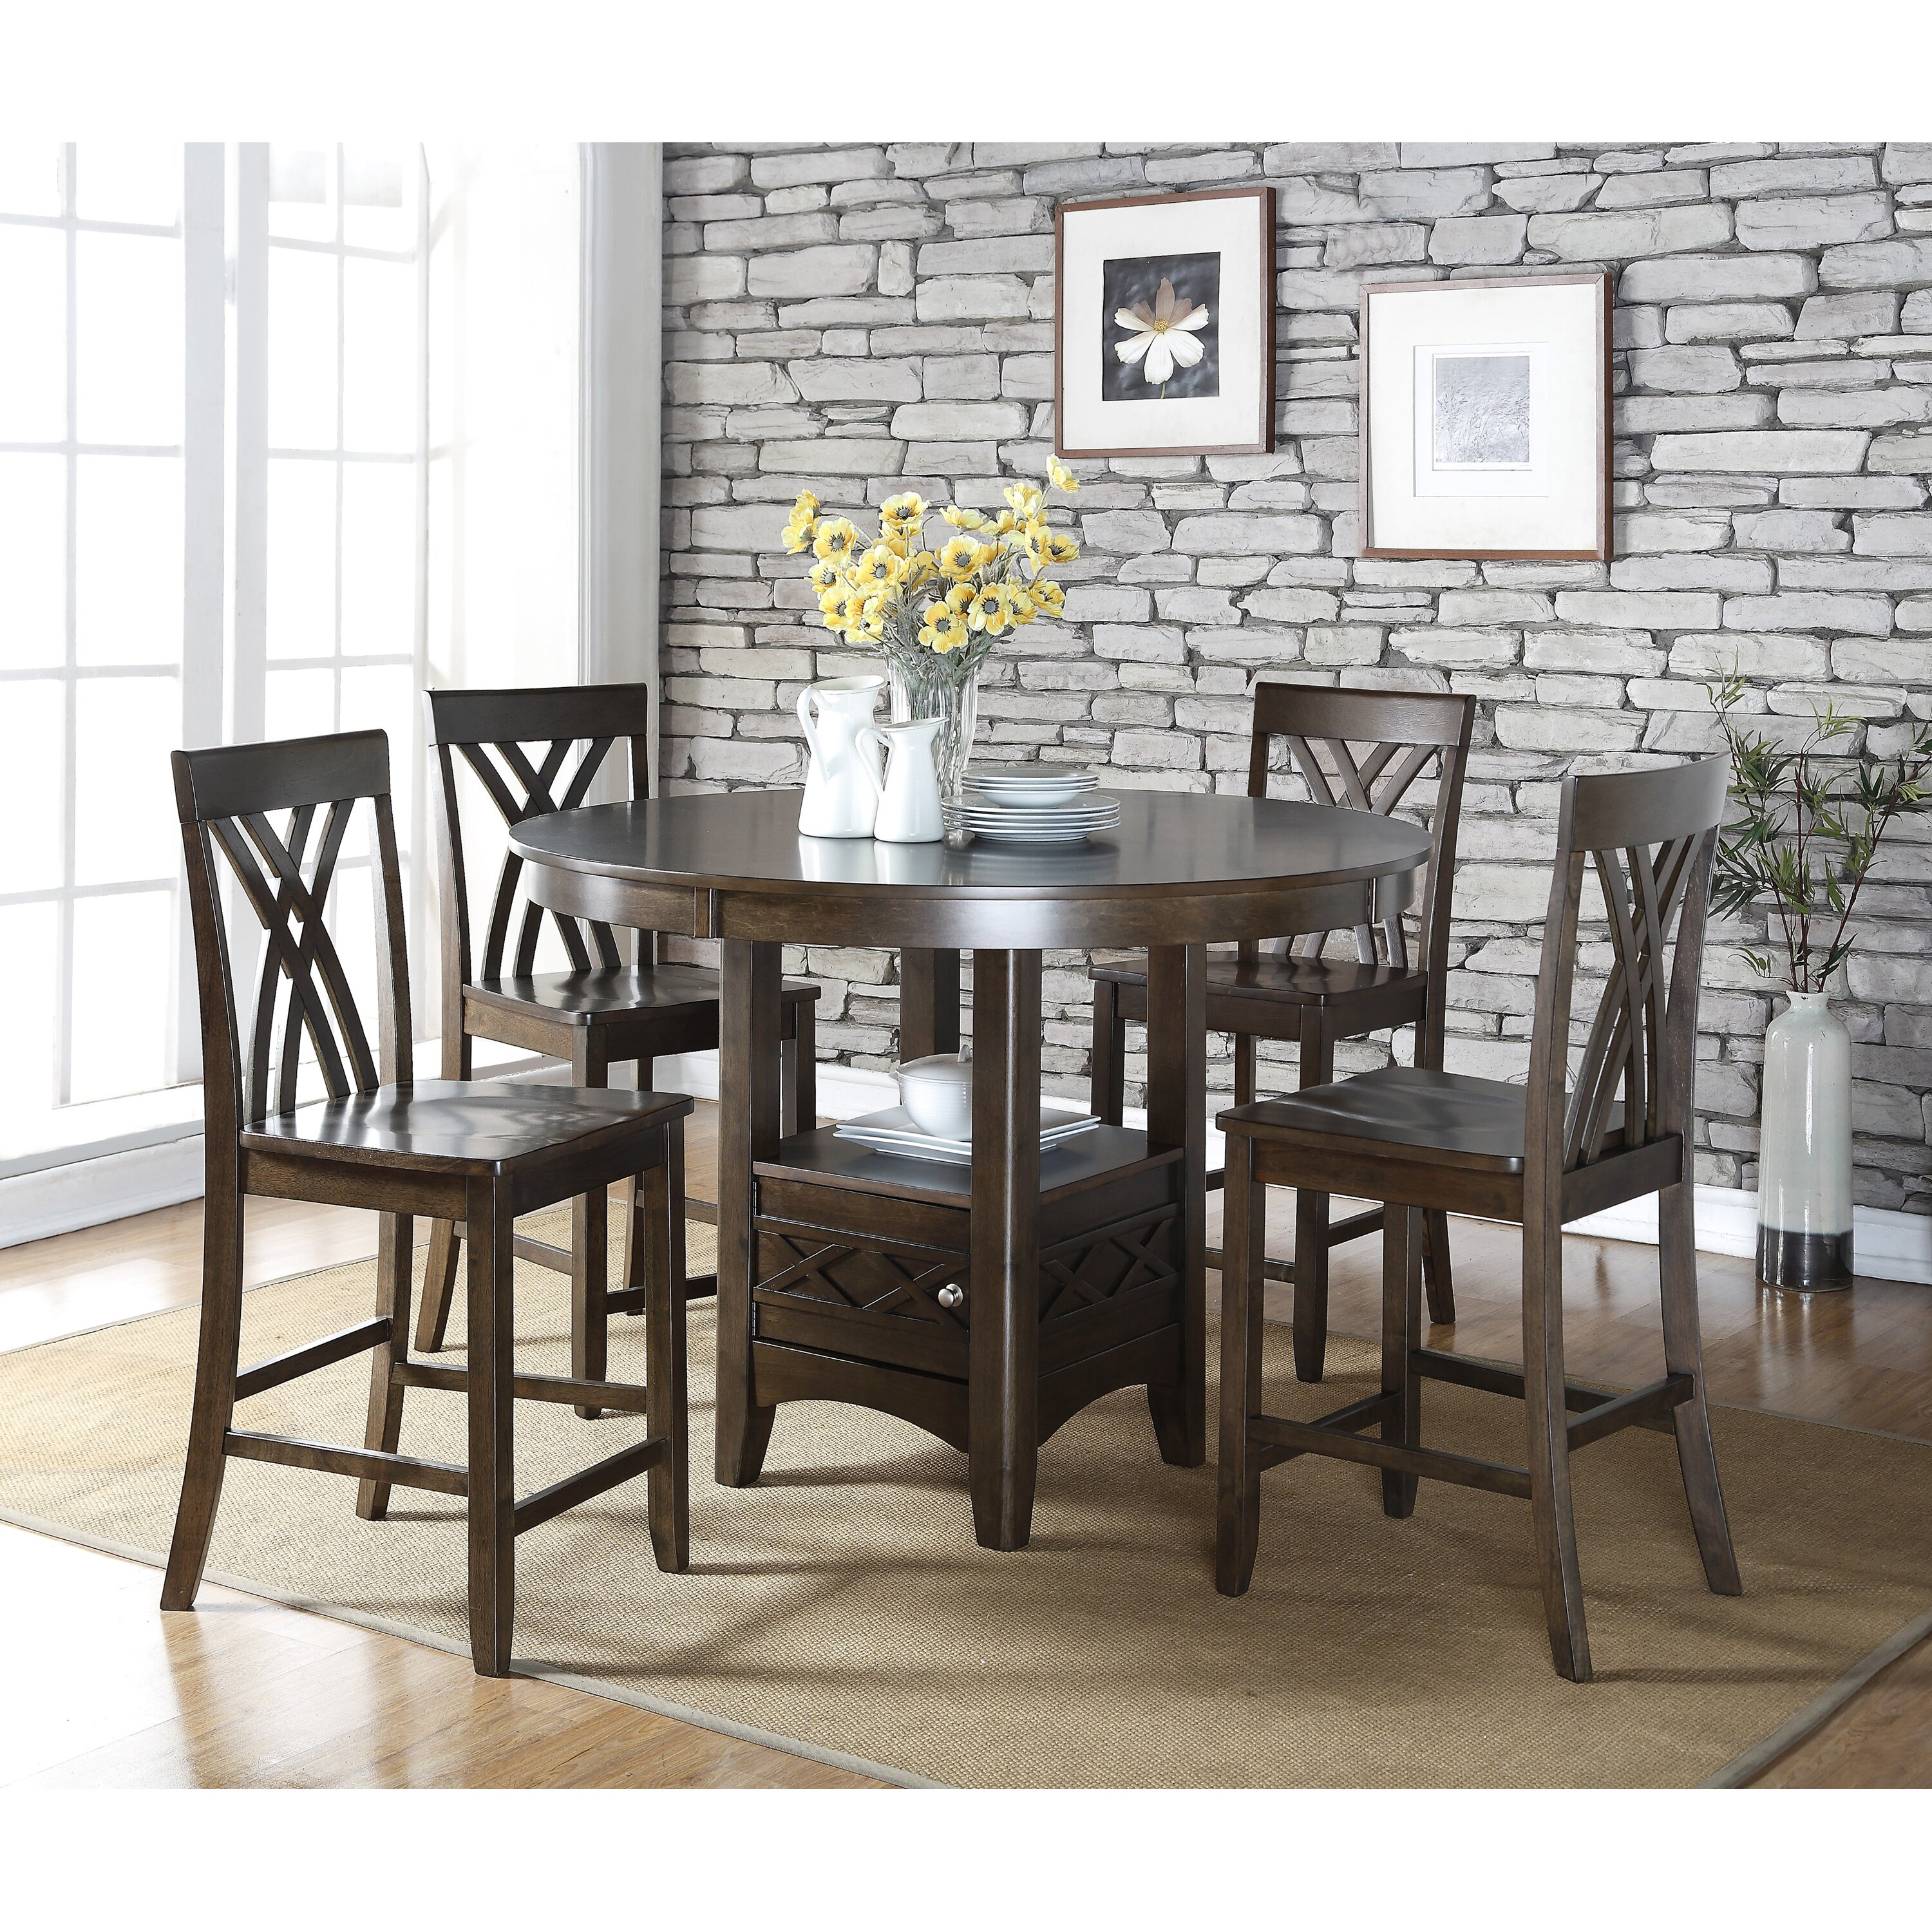 hd wallpapers 5 piece counter height dining table set 3d